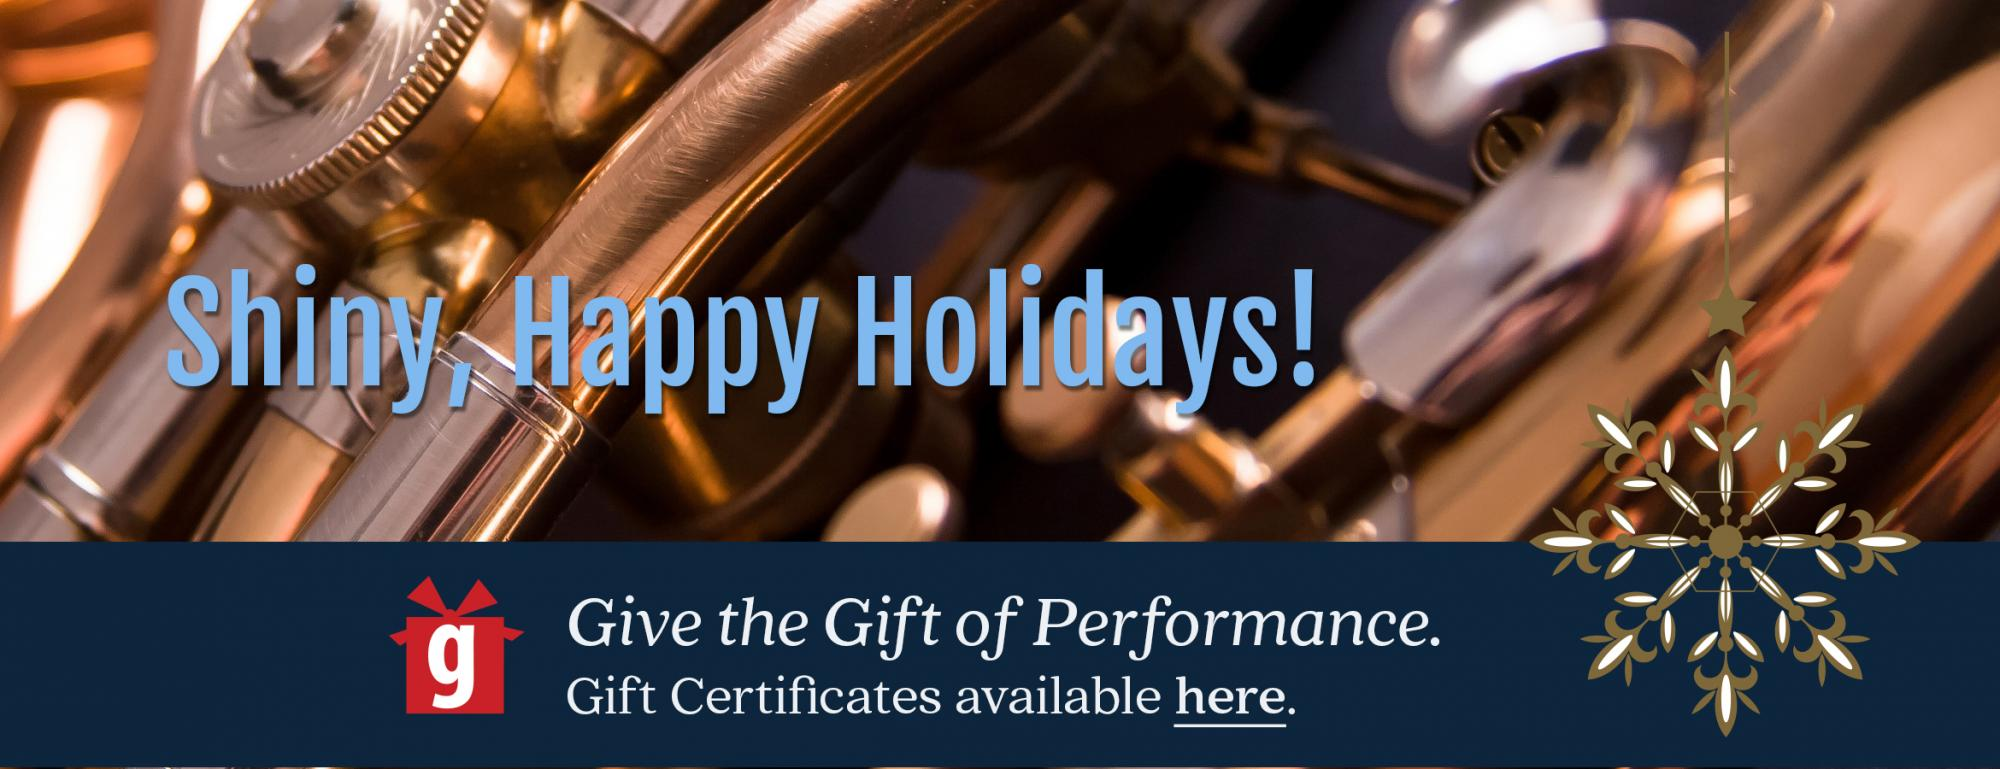 Give the Gift of Performance!